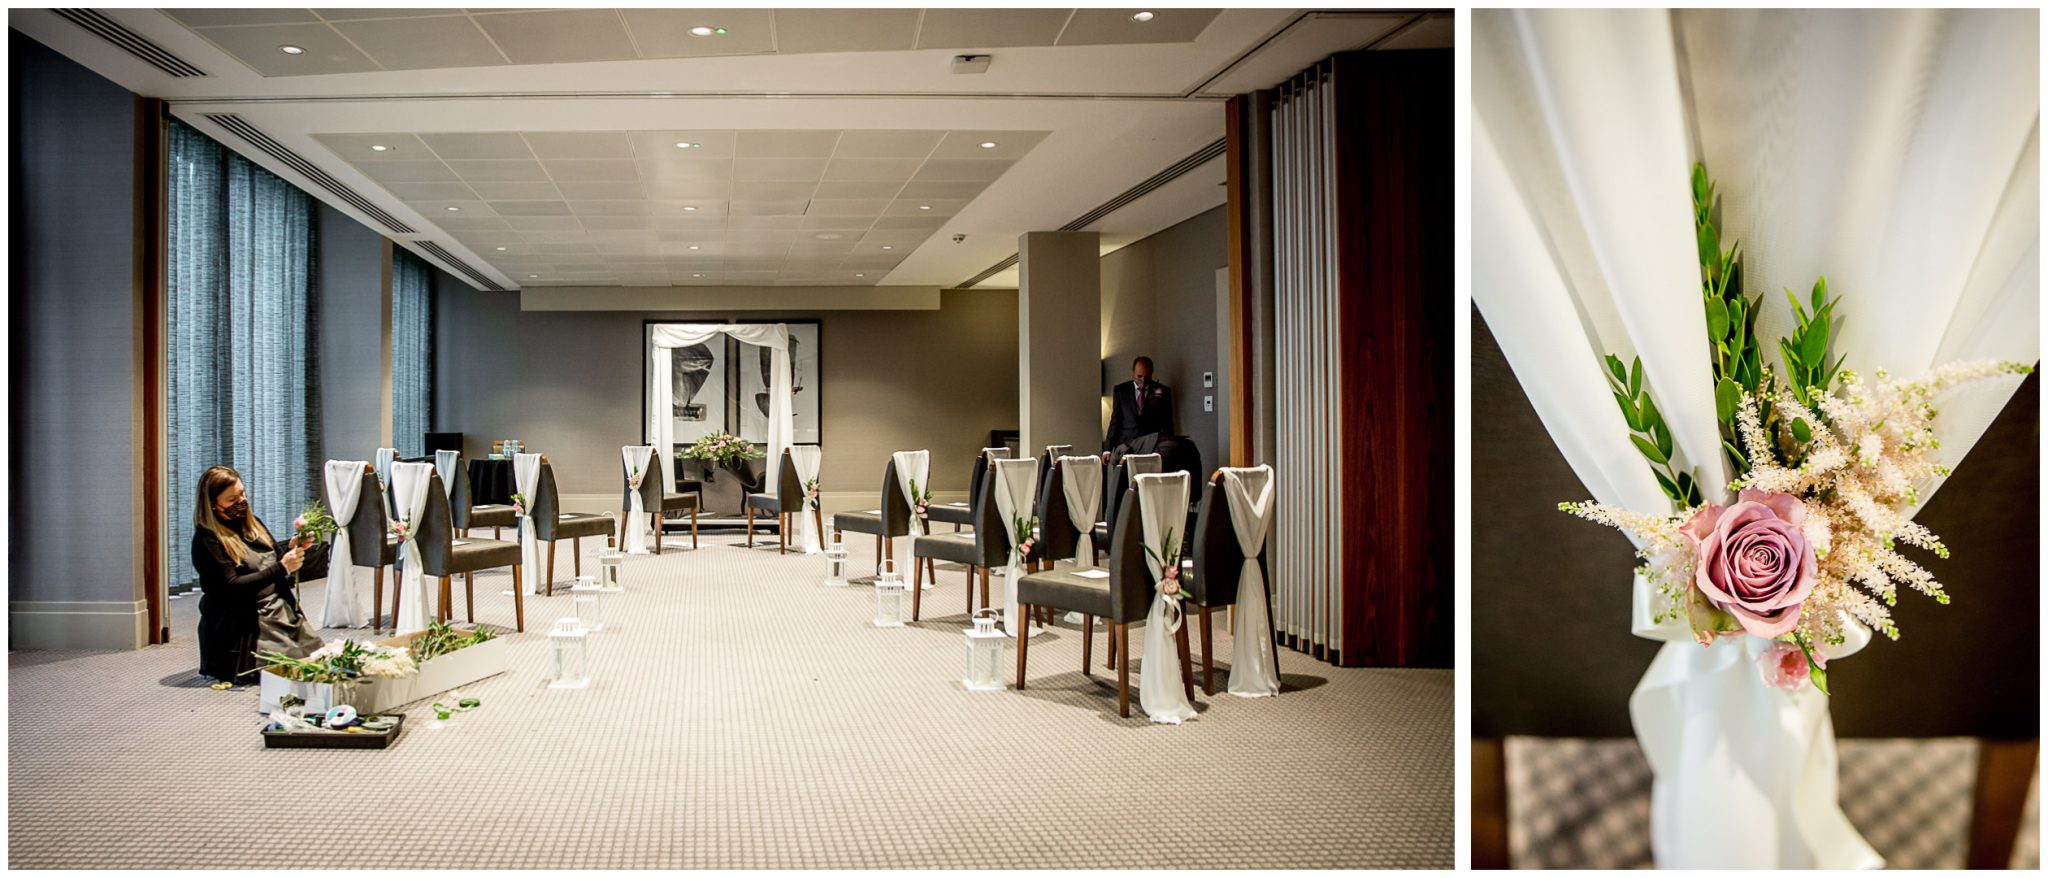 Florist decorates the ceremony room socially distanced seating